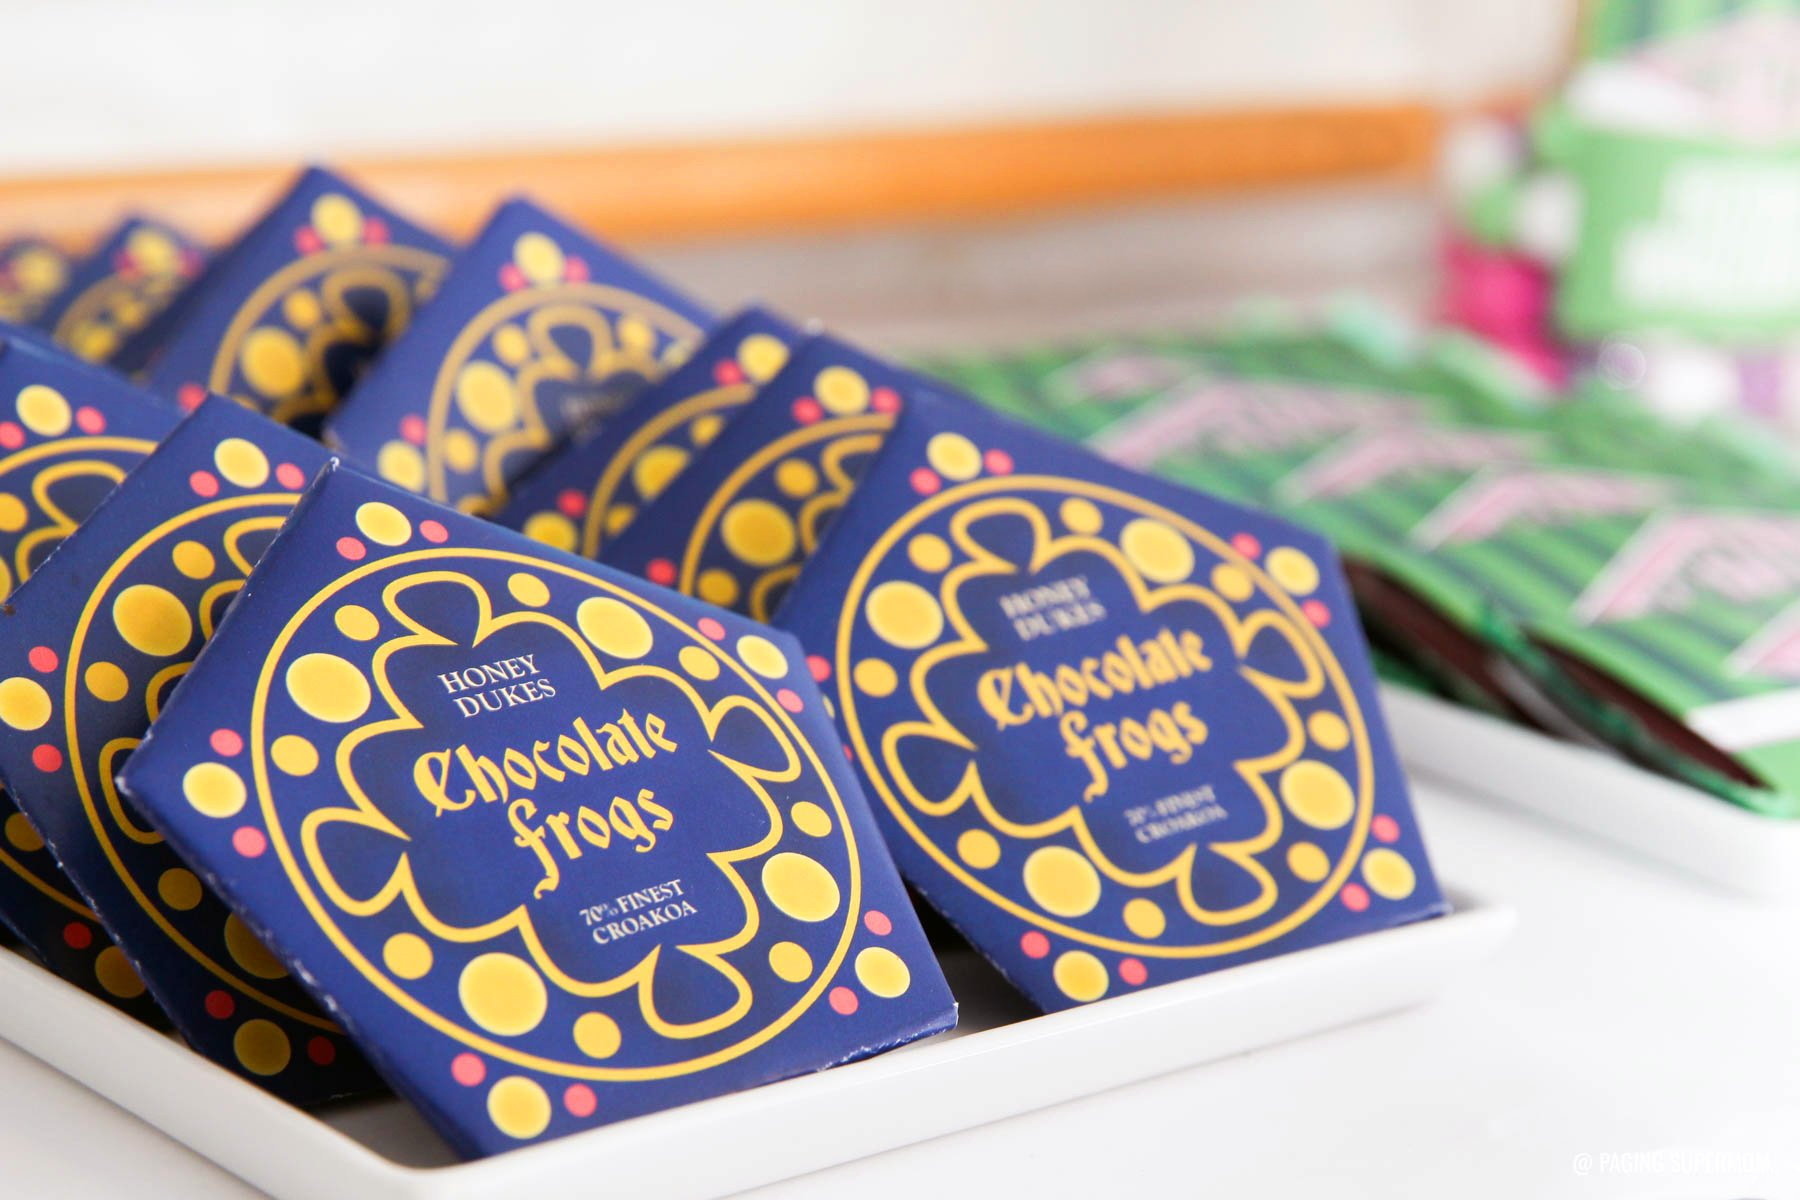 picture about Harry Potter Chocolate Frog Cards Printable identify Harry Potter Chocolate Frogs - Absolutely free Printable Template for